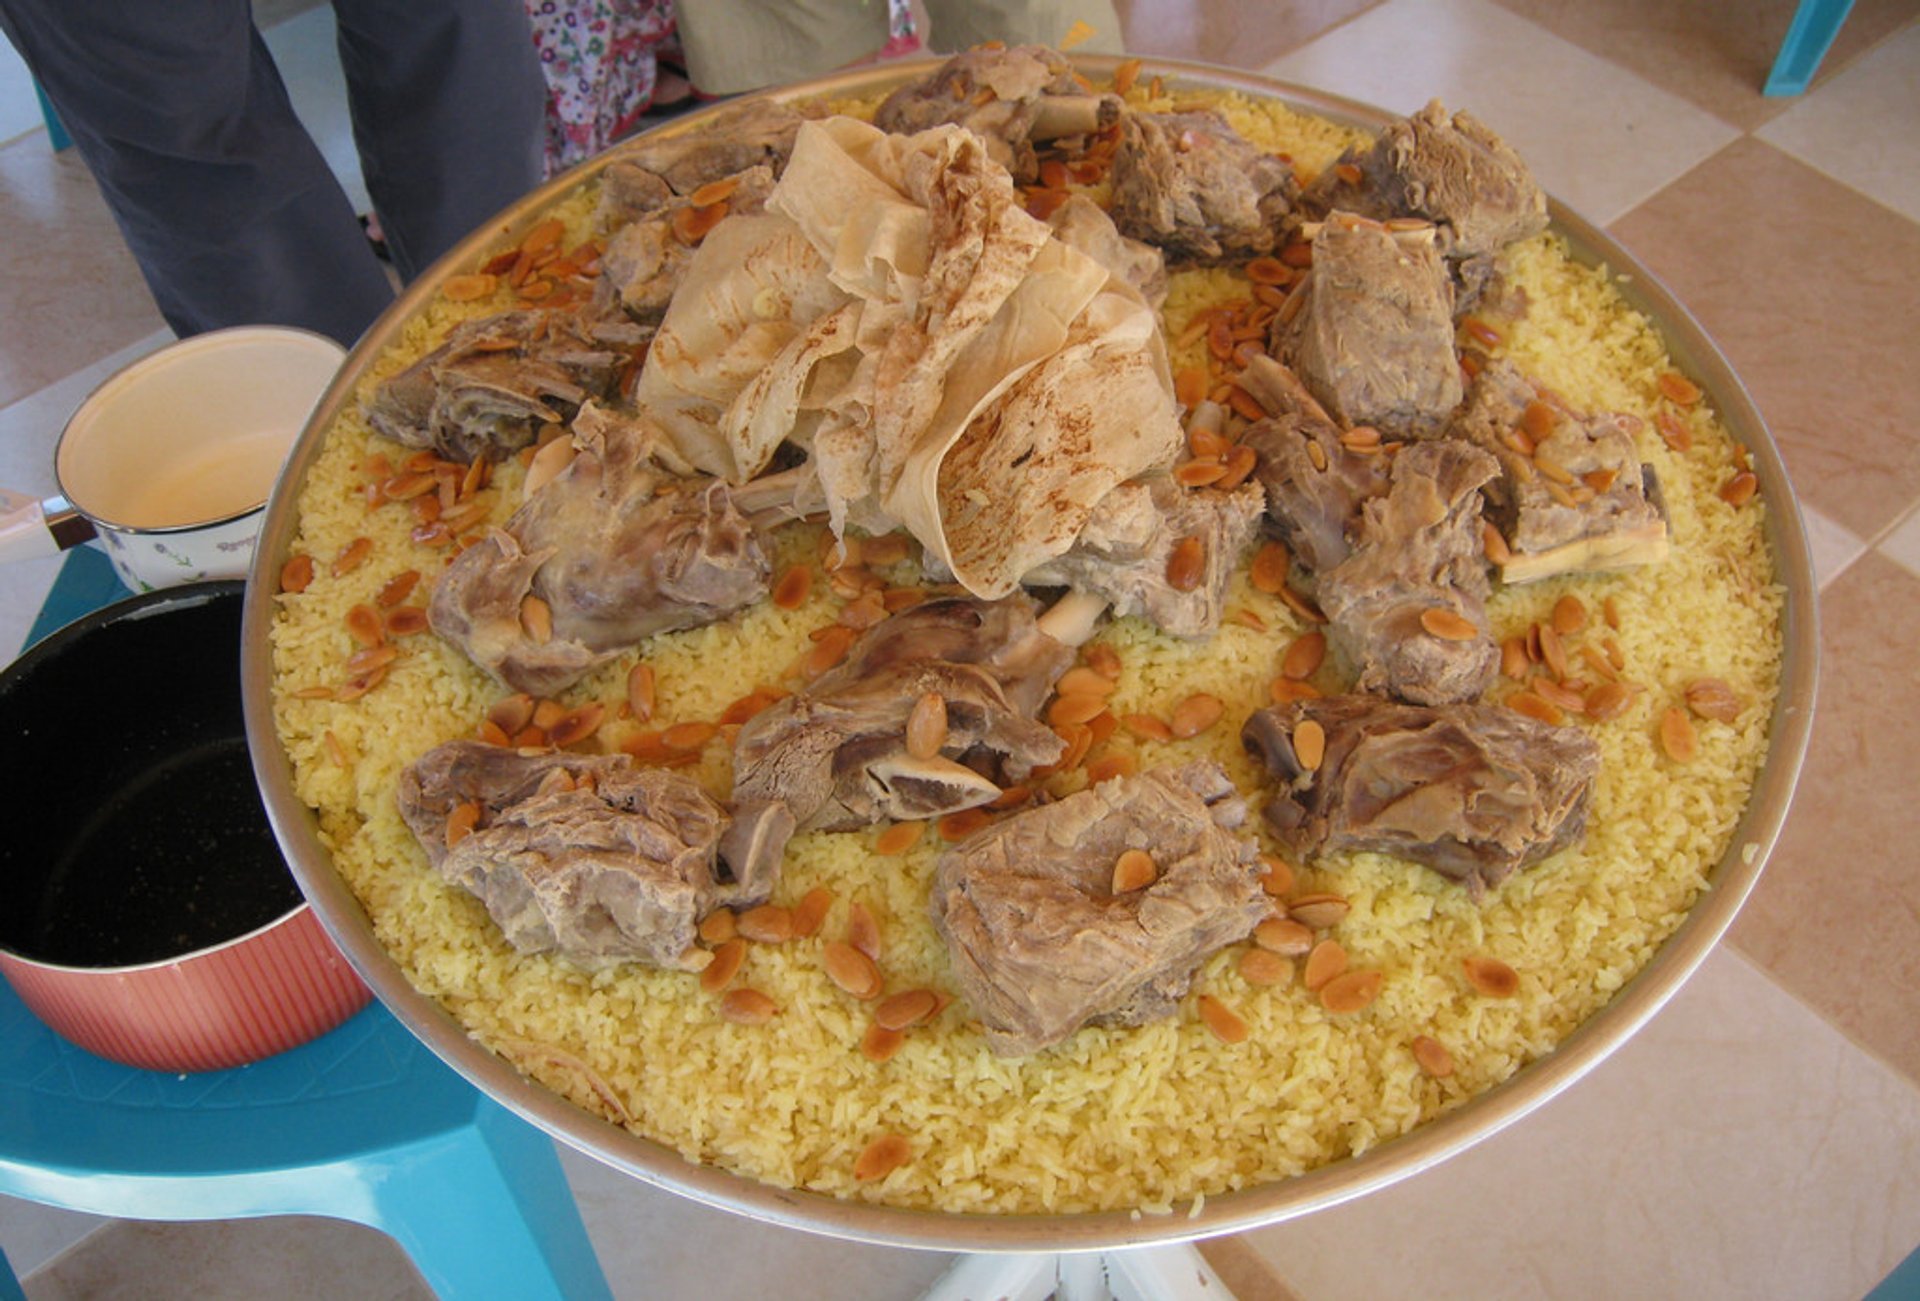 Mansaf in Jordan 2020 - Best Time